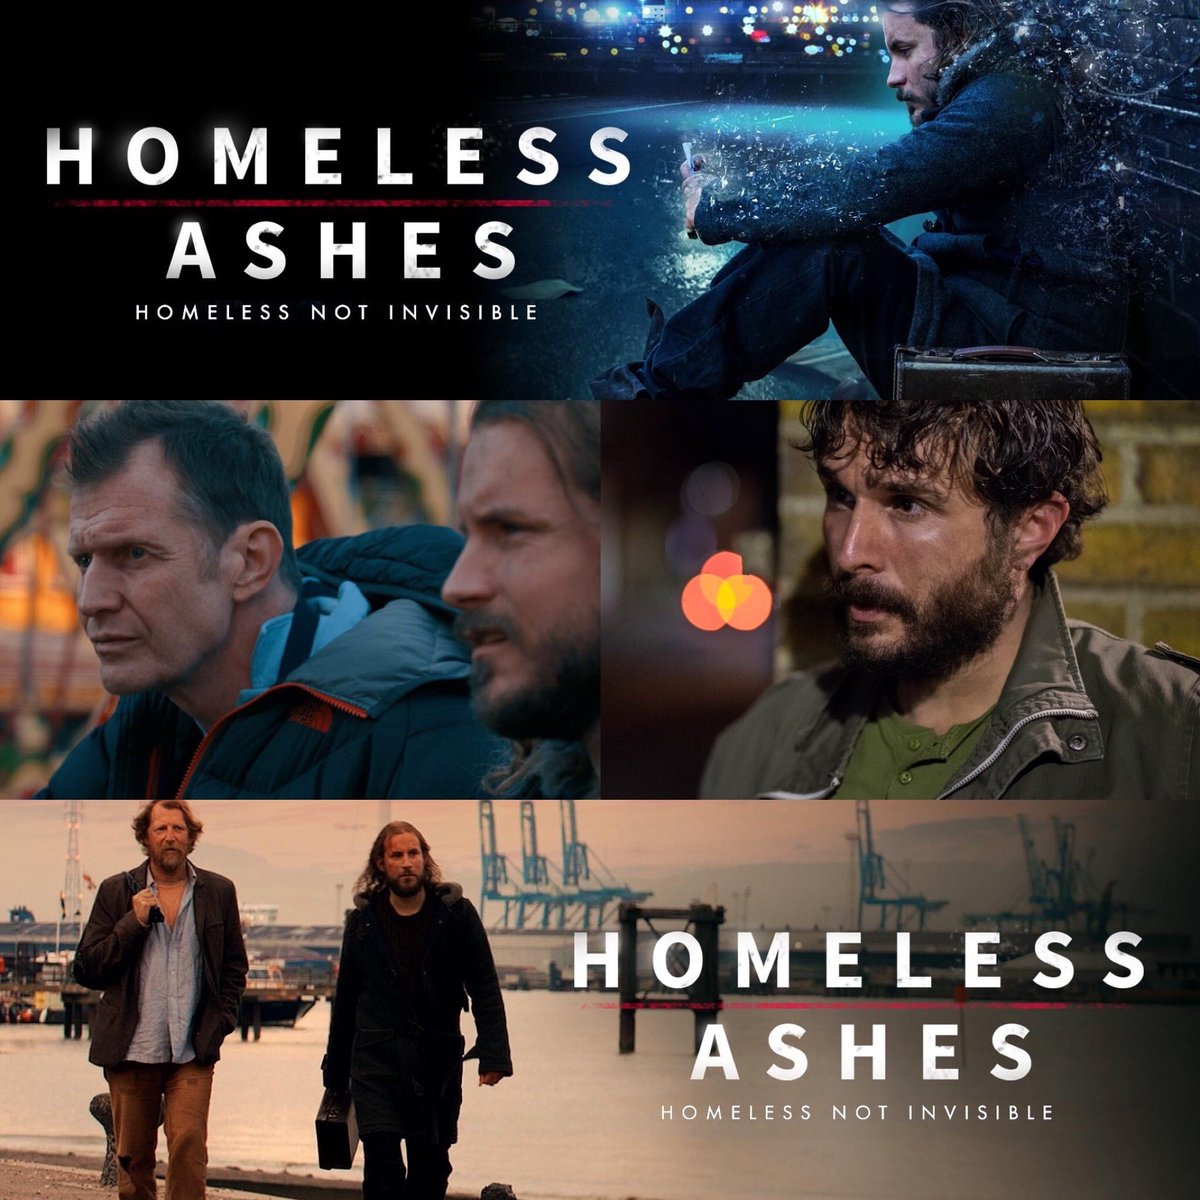 Here's a look at my character AL a war veteran in @homelessashes available worldwide on @PrimeVideo, the movie holds a powerful message. We premiered the movie @Raindance Film Festival in 2019  @Variety @primevideouk @StephenKing @HelenLOHara @NickdeSemlyen - hope you're all well